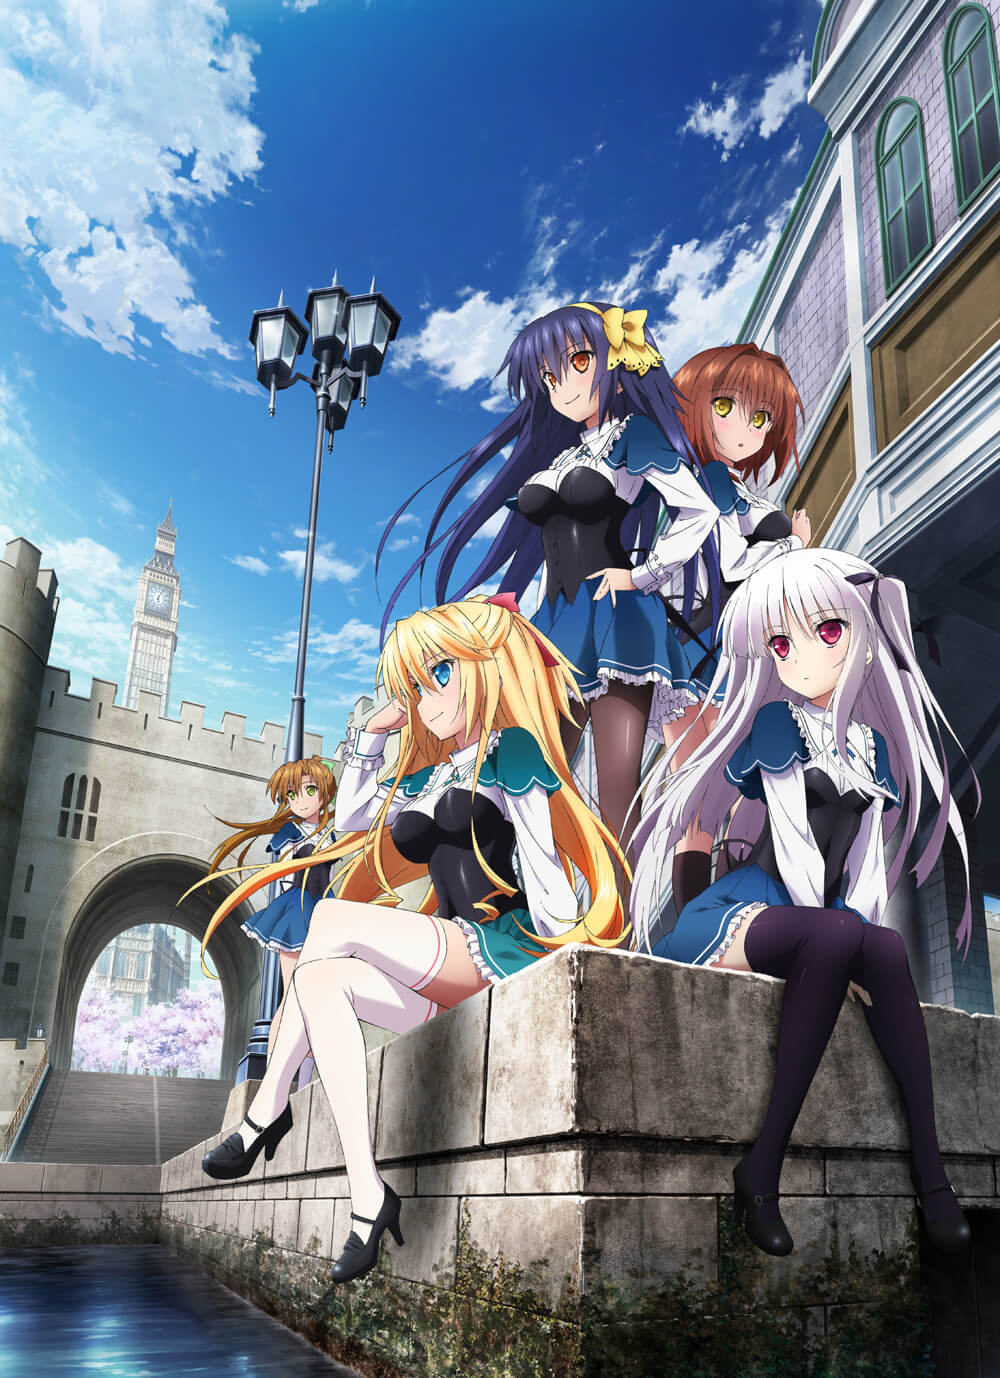 Ficha Técnica Absolute Duo | Inverno 2015